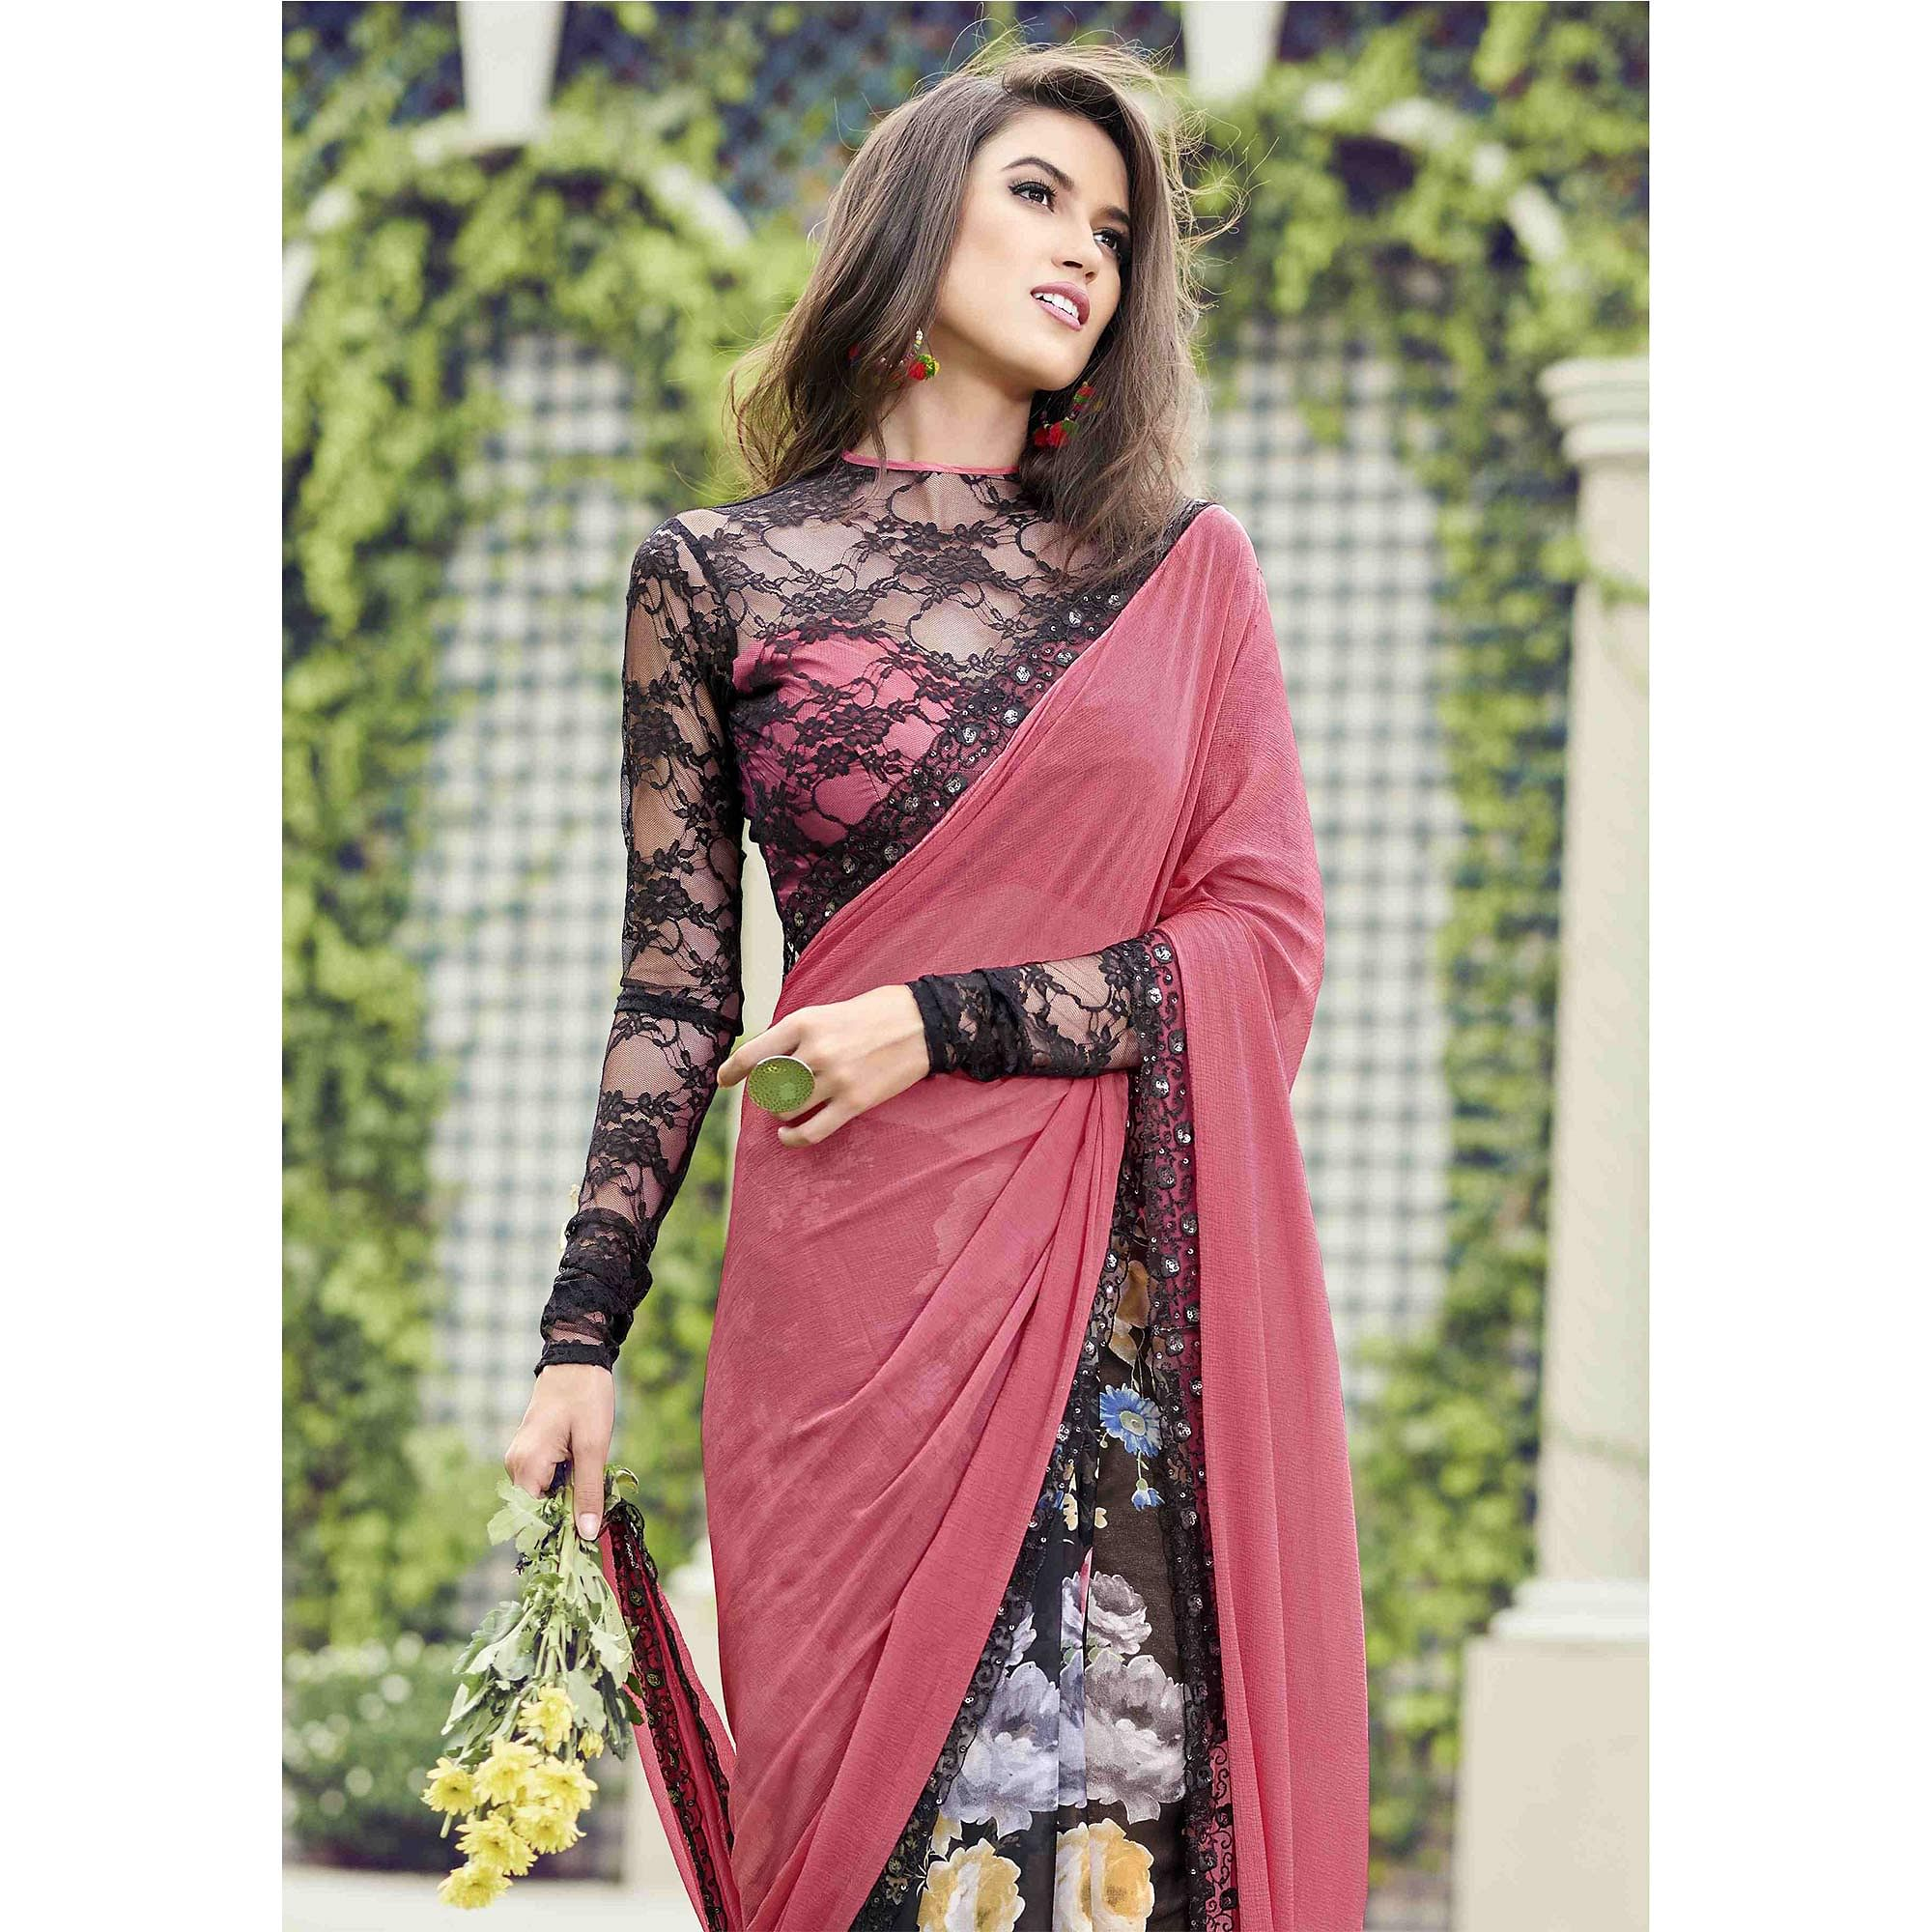 85dc45b633a Delightful Pink - Black Colored Casual Wear Printed Chiffon-Faux Georgette  Saree